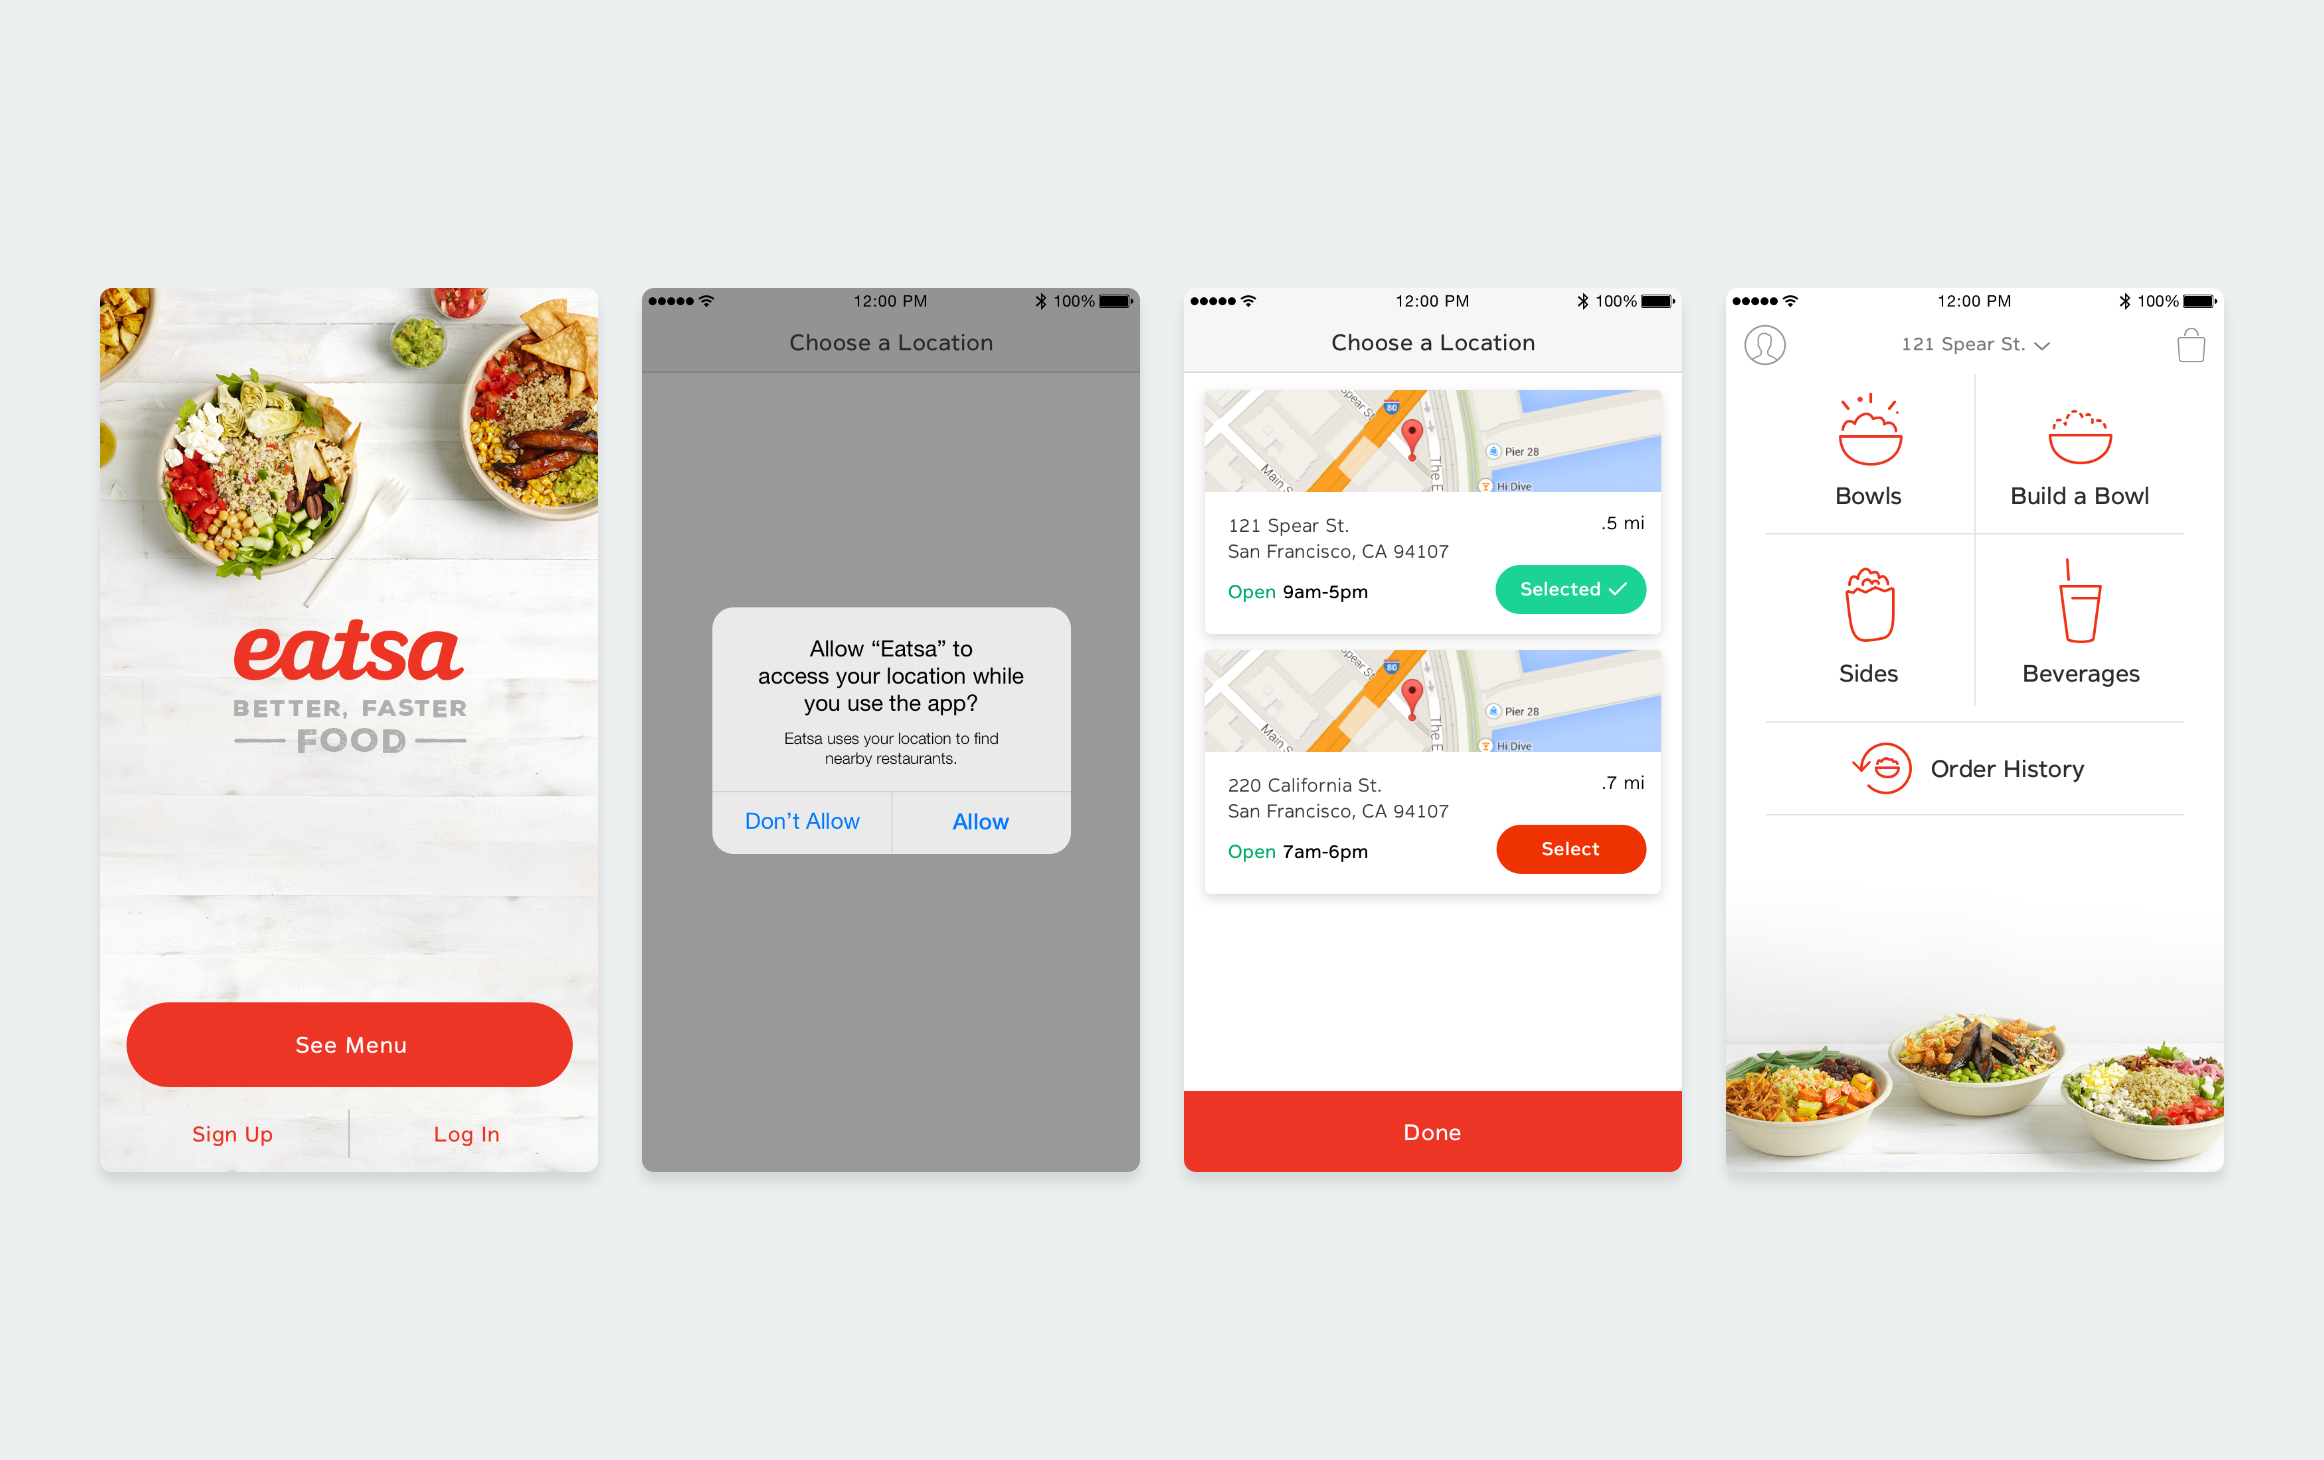 We wanted customers to get into the app super fast, so they were presented with the menu quickly.    1. We started off testing a landing view (#1) where the main call to action was to see the menu. Although this was headed in the right direction, we challenged ourselves to make this transition even easier.